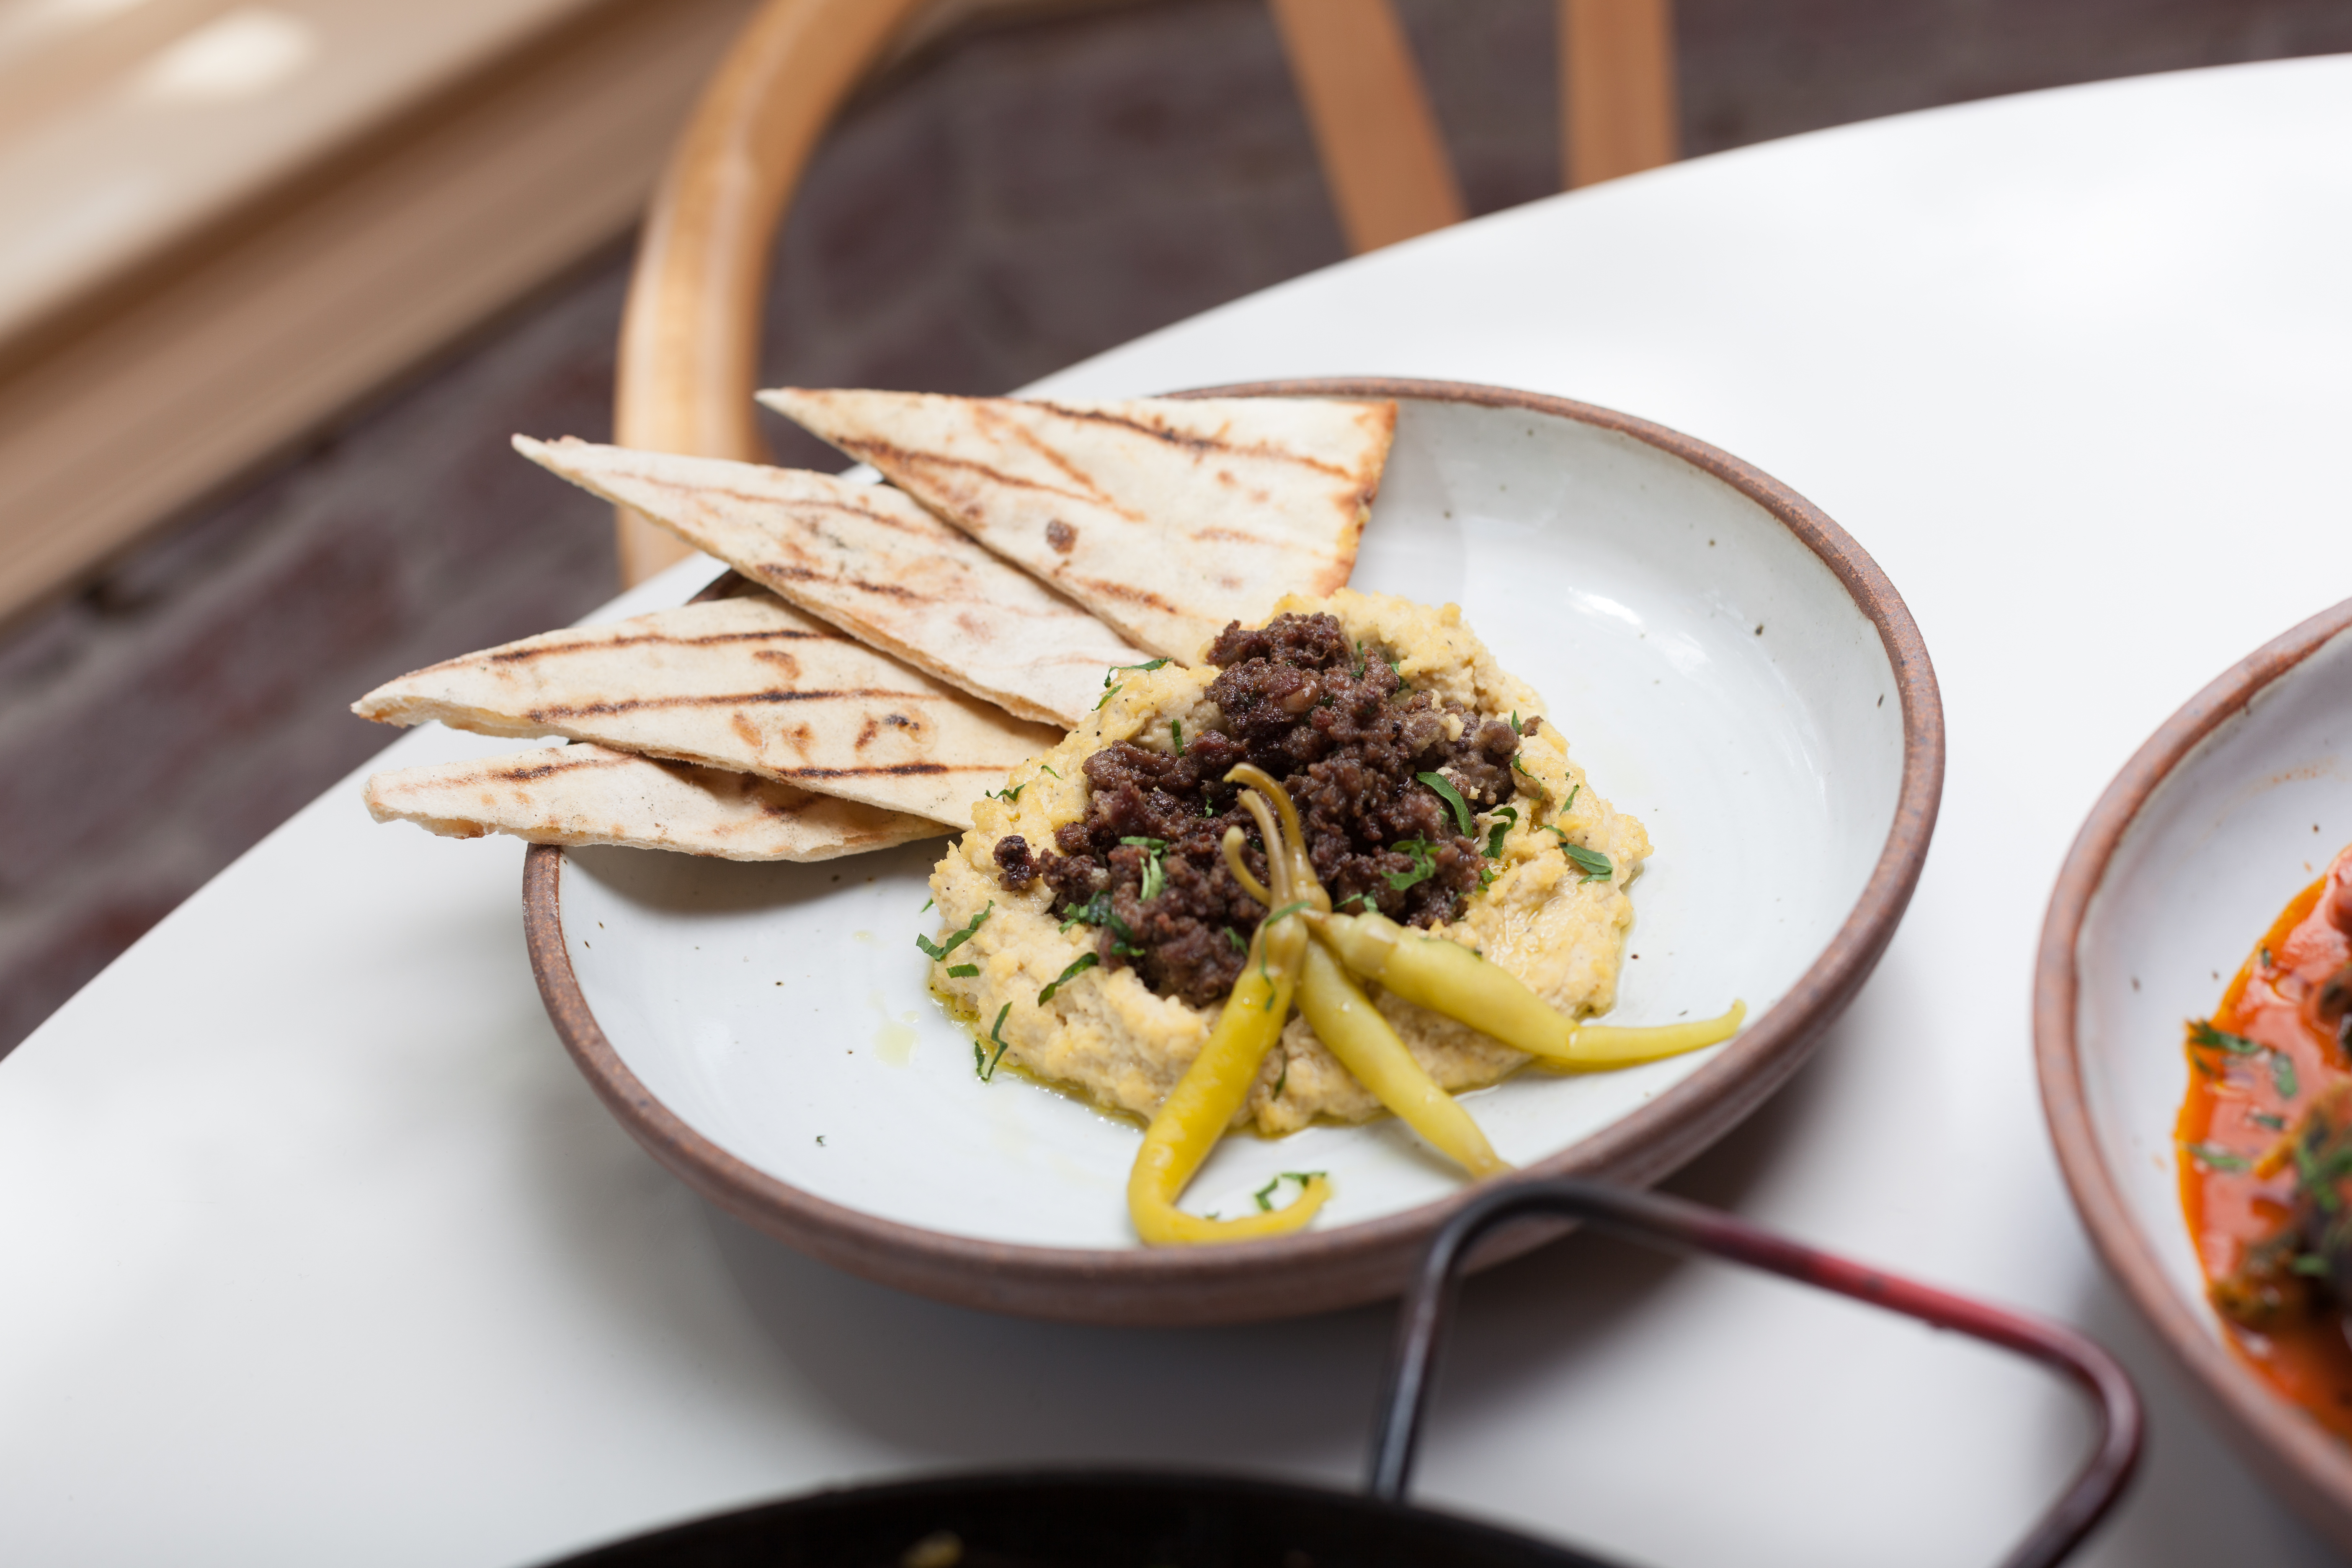 This Moroccan spread made with pureed chickpeas has similar DNA to Middle Eastern hummus. It comes topped off with pickled round lamb fragrant with cumin and cinnamon, and pickled Guindilla peppers. (Image: Bobby Spero)